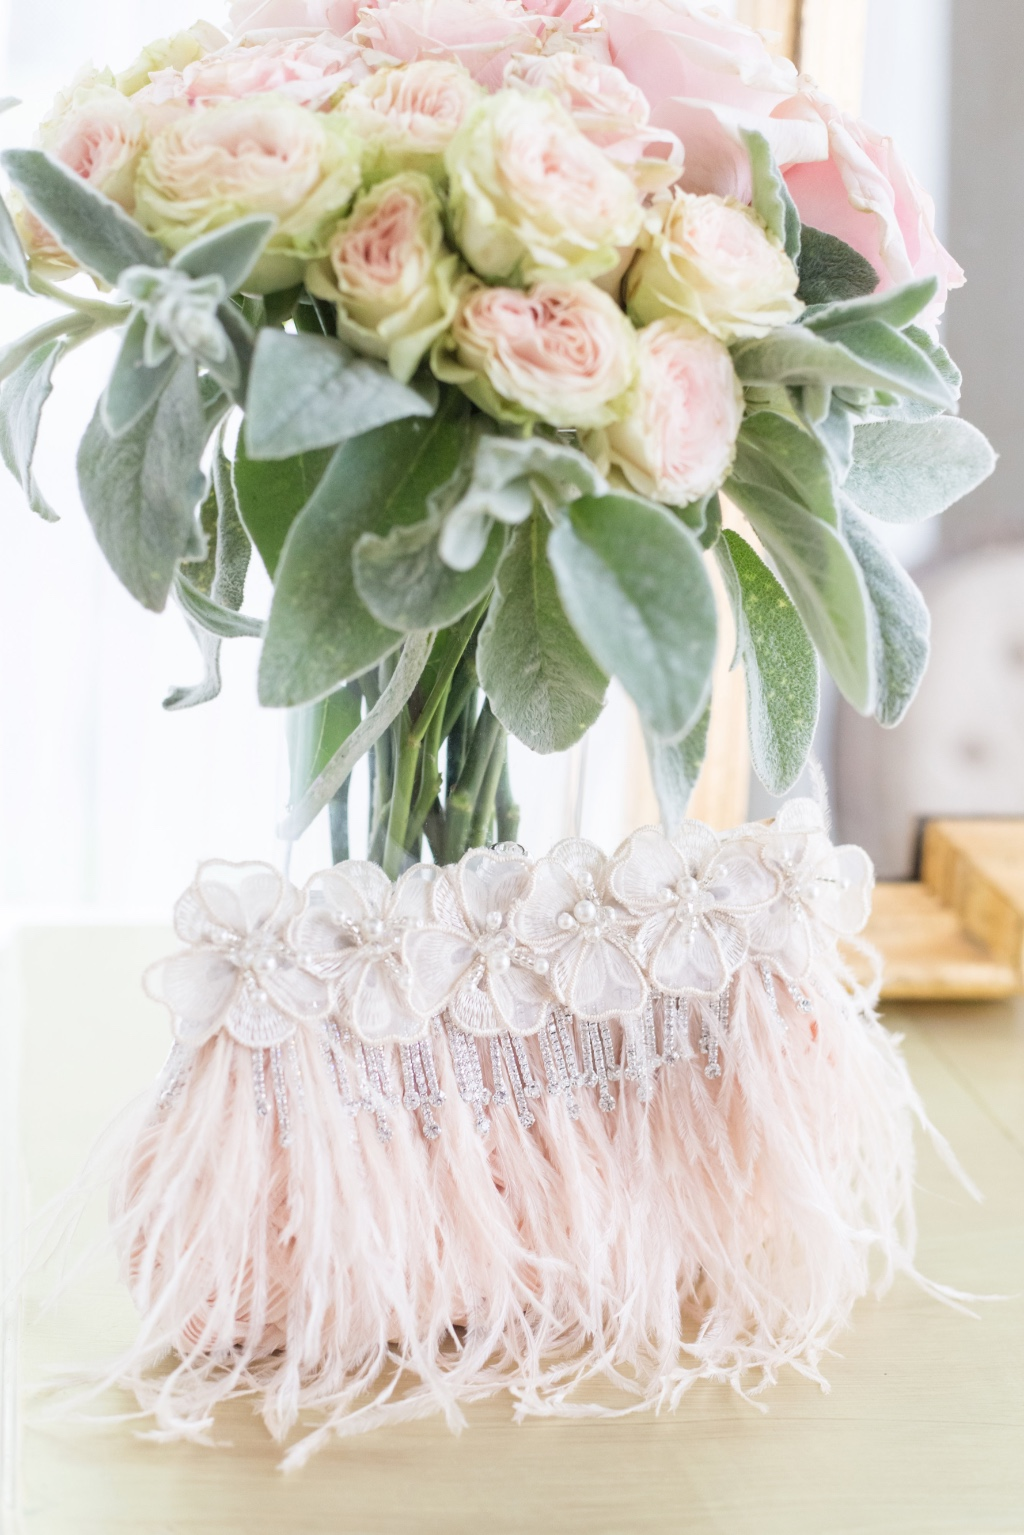 Blush ostrich feathers and a touch of rhinestone jewels.